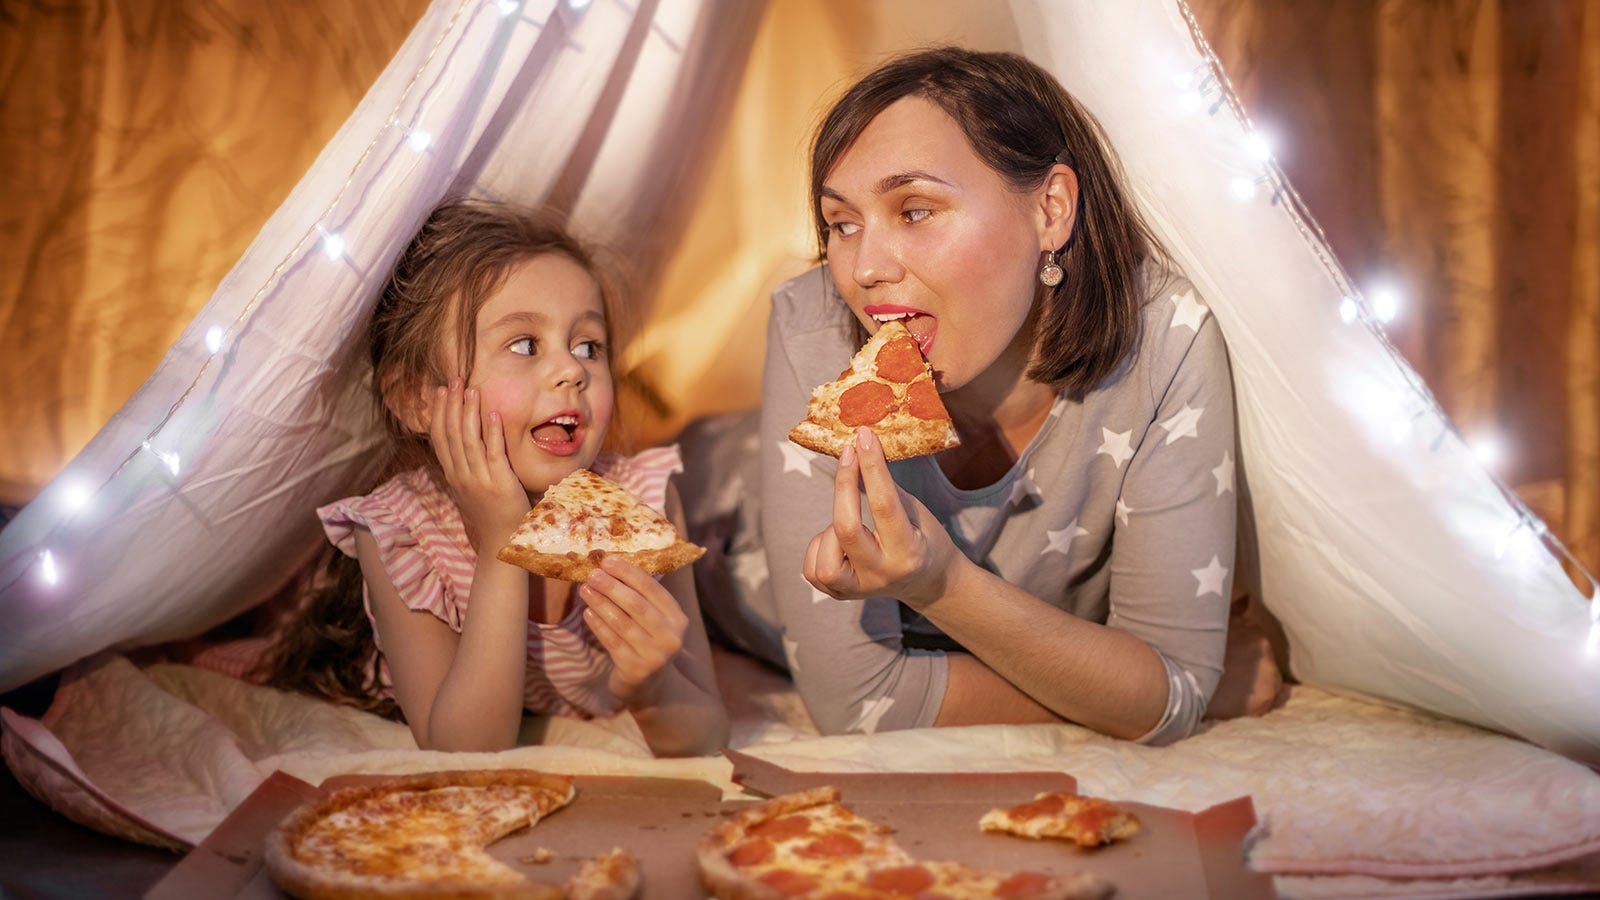 A mother and daughter having fun eating pizza in a tent set up in their living room.